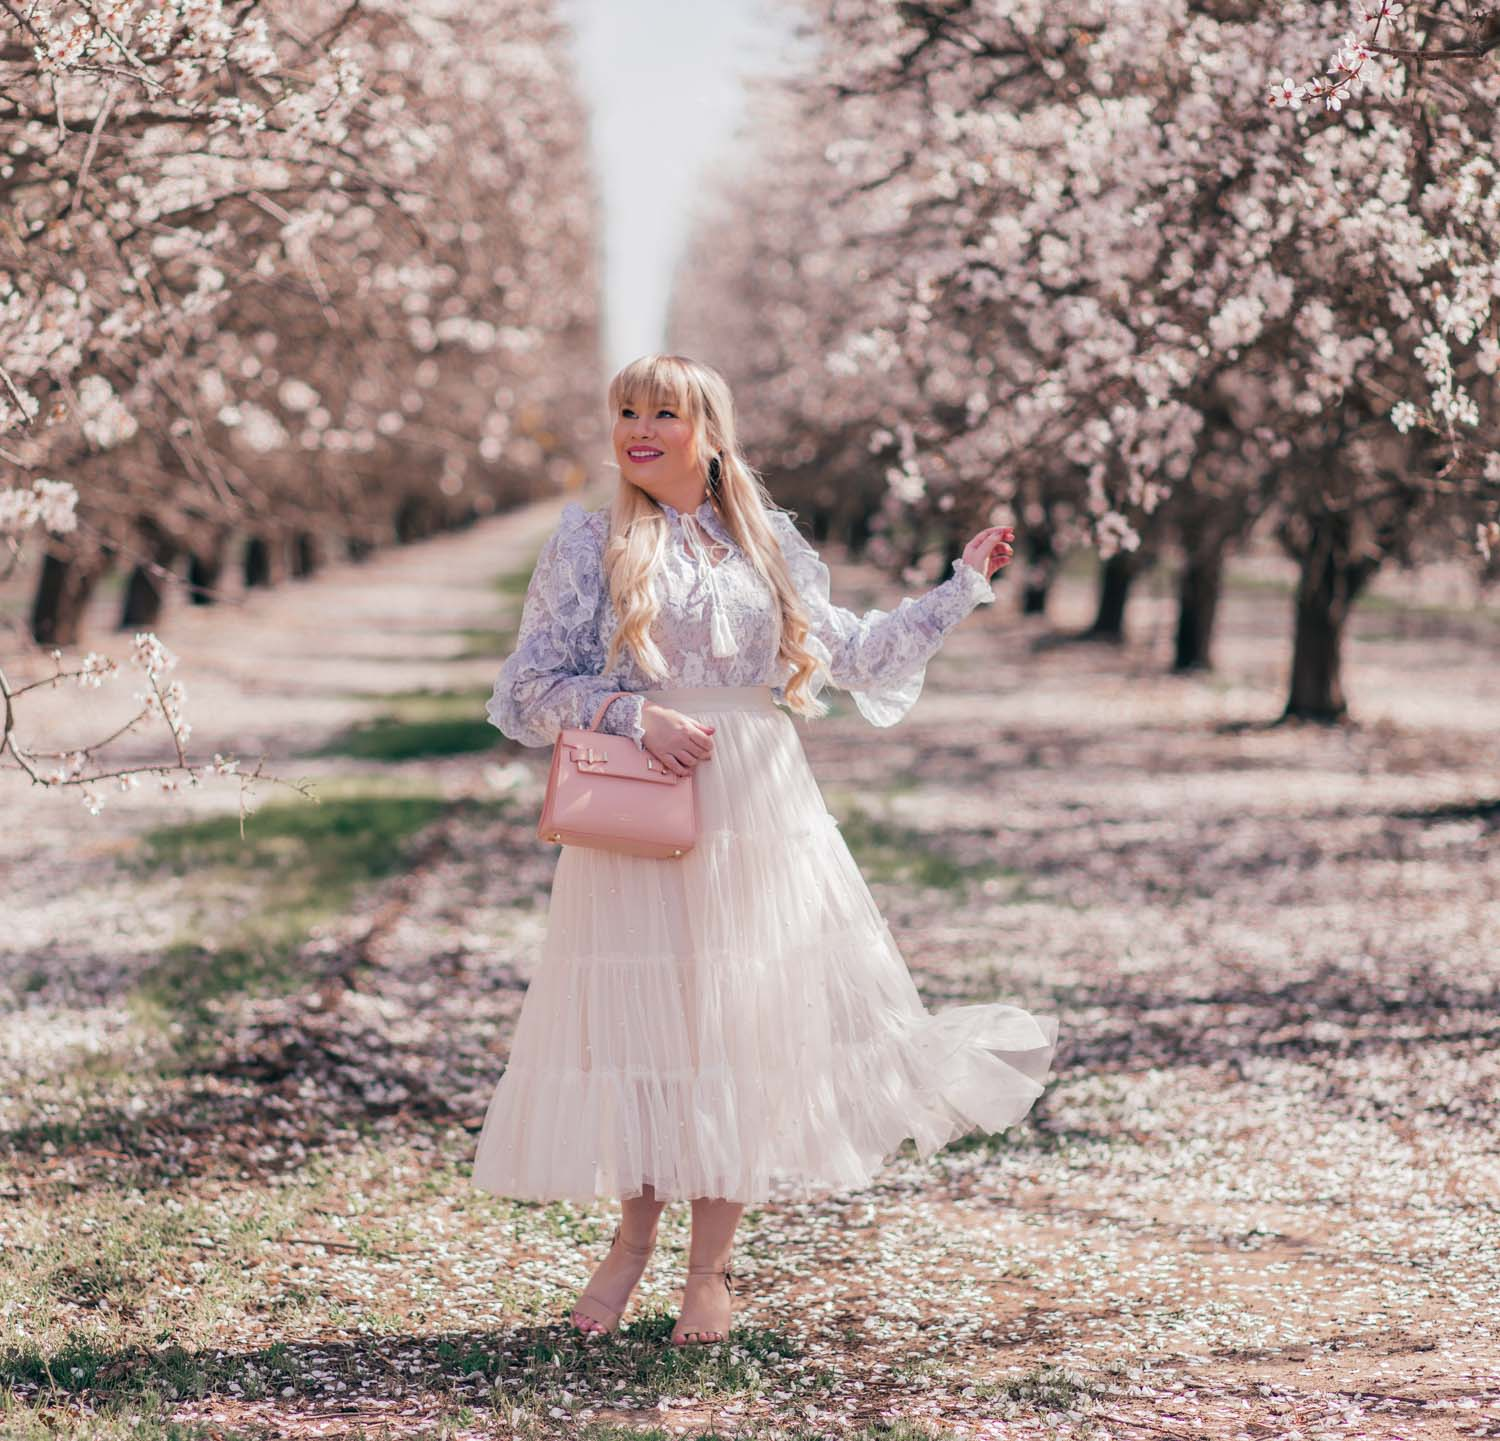 Fashion Blogger Elizabeth Hugen styles a Feminine Easter Outfit for Spring with a Chicwish top and tulle skirt and Teddy Blake handbag